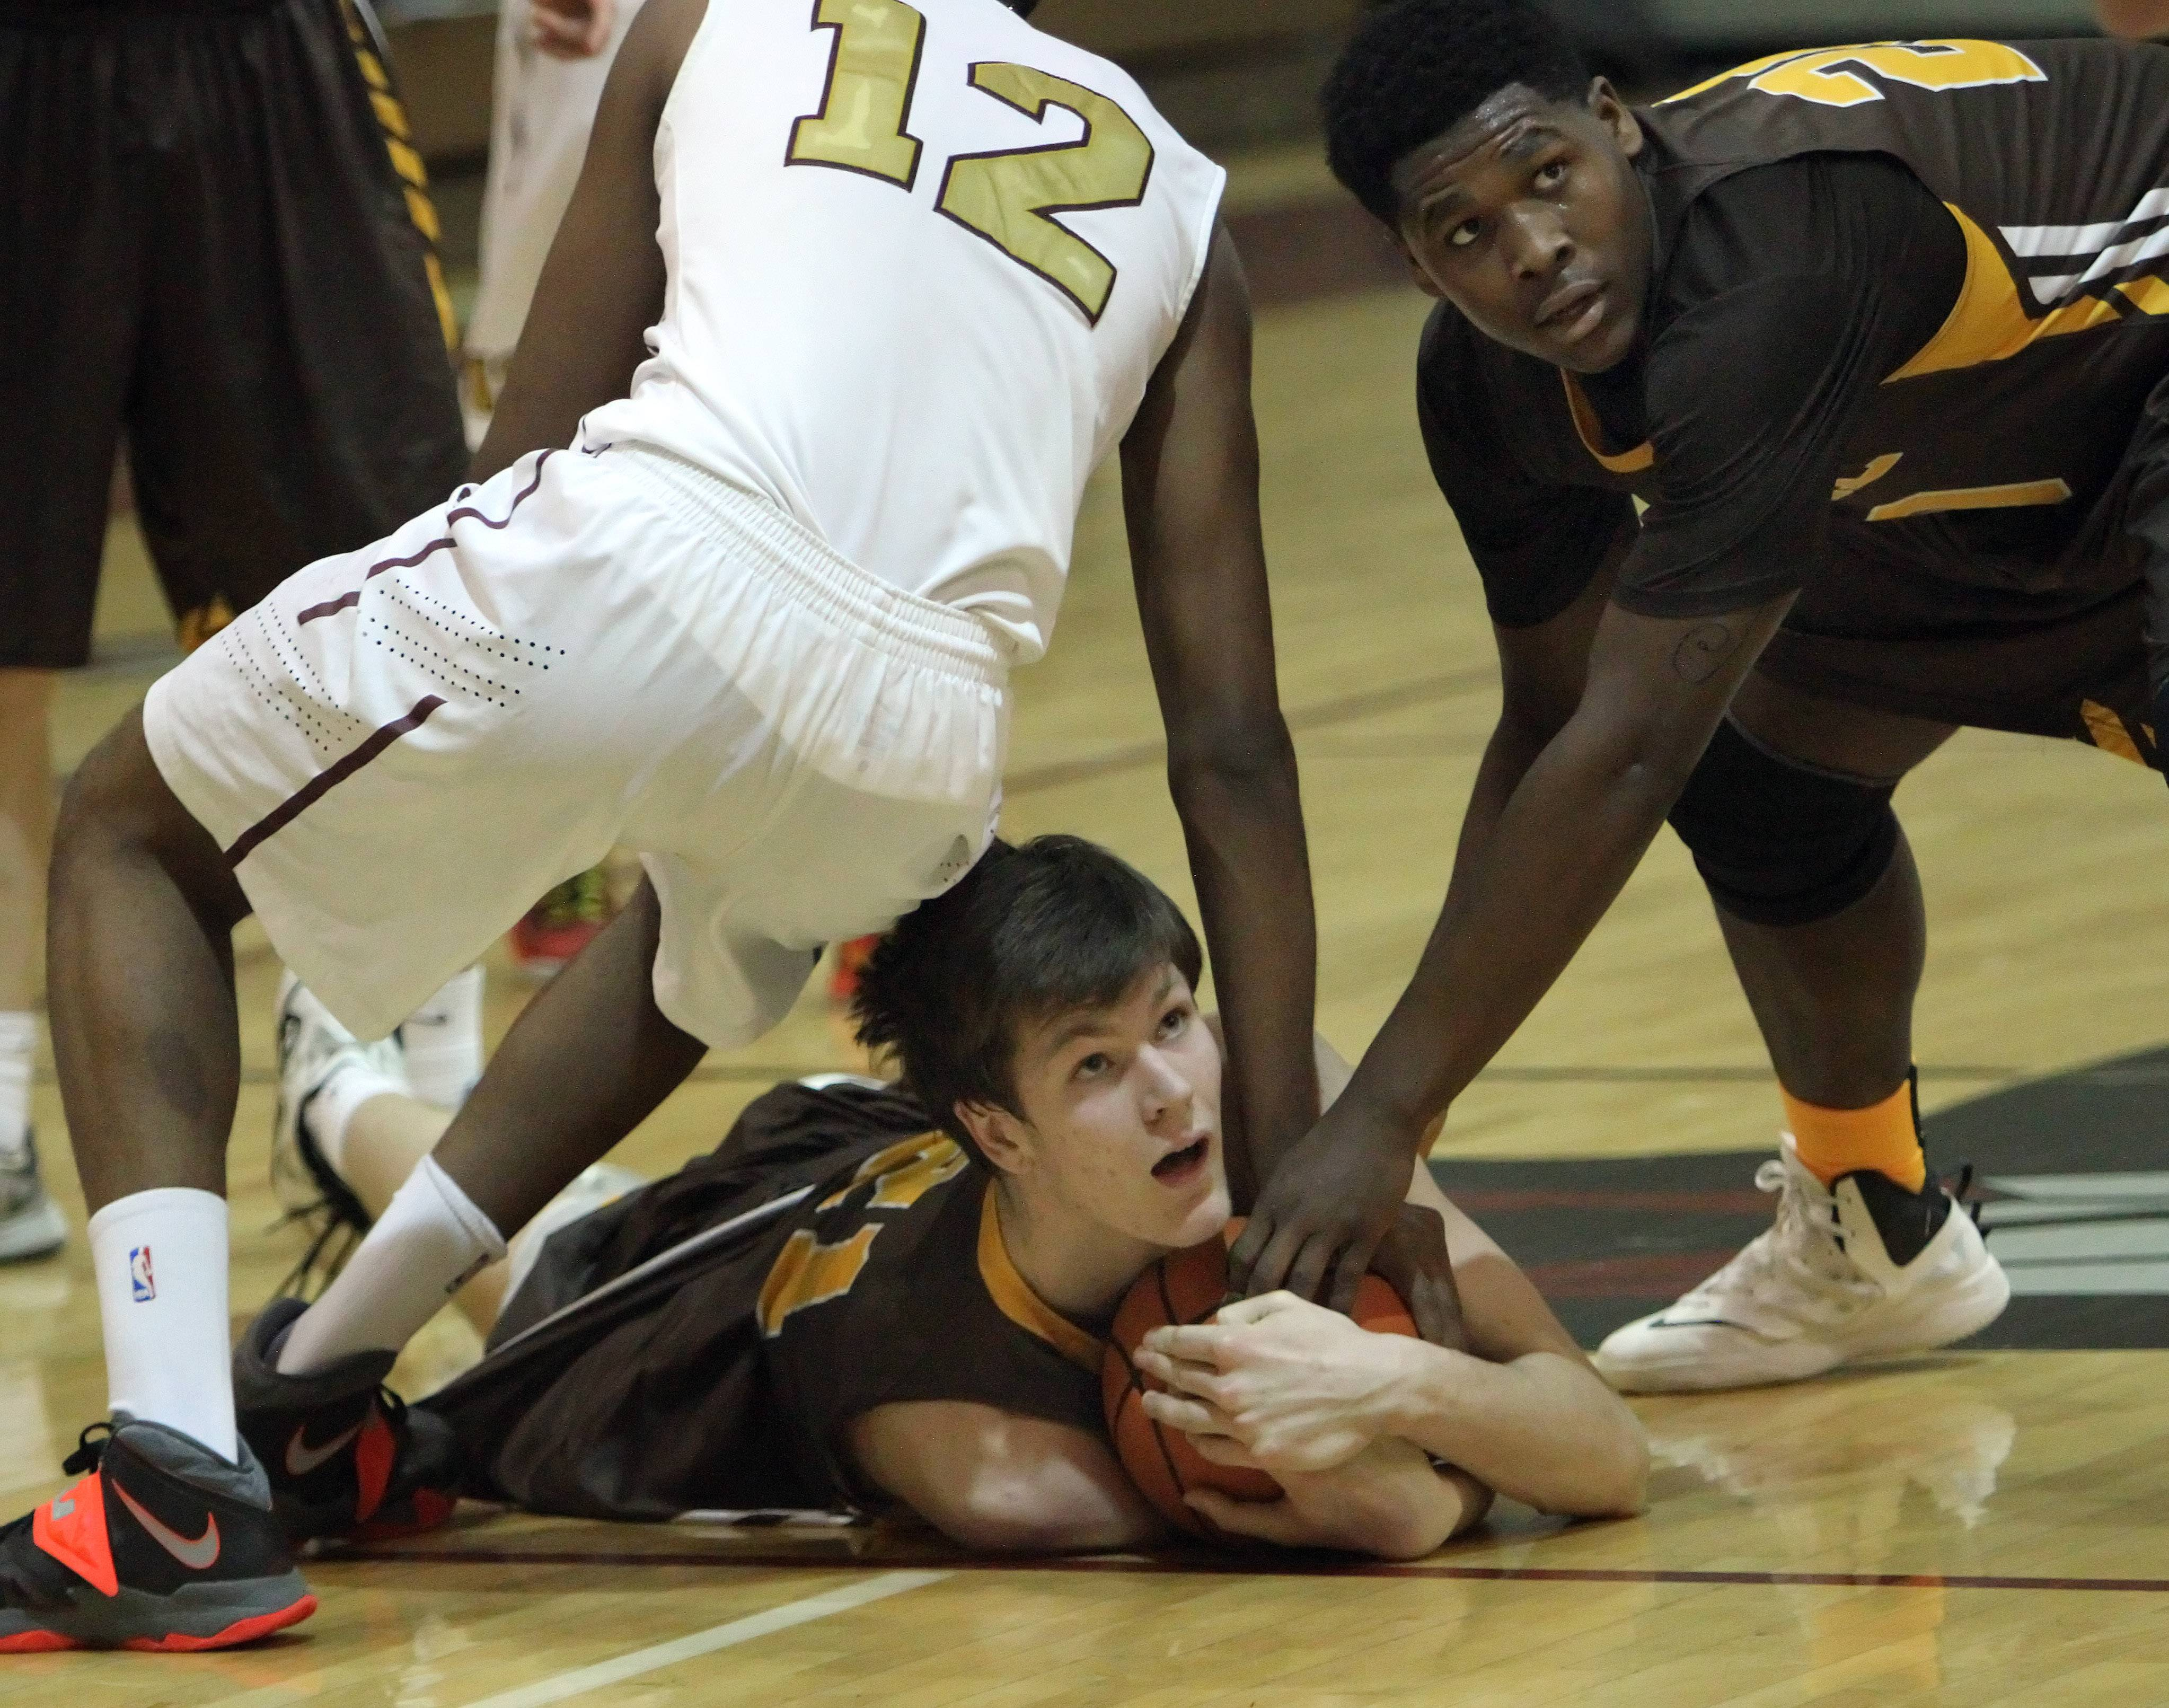 Carmel's Jack George, left, and Nickai Poyser try to secure a loose ball during the Corsairs' win over Uplift in the Class 3A sectional semifinal at Antioch on Wednesday.